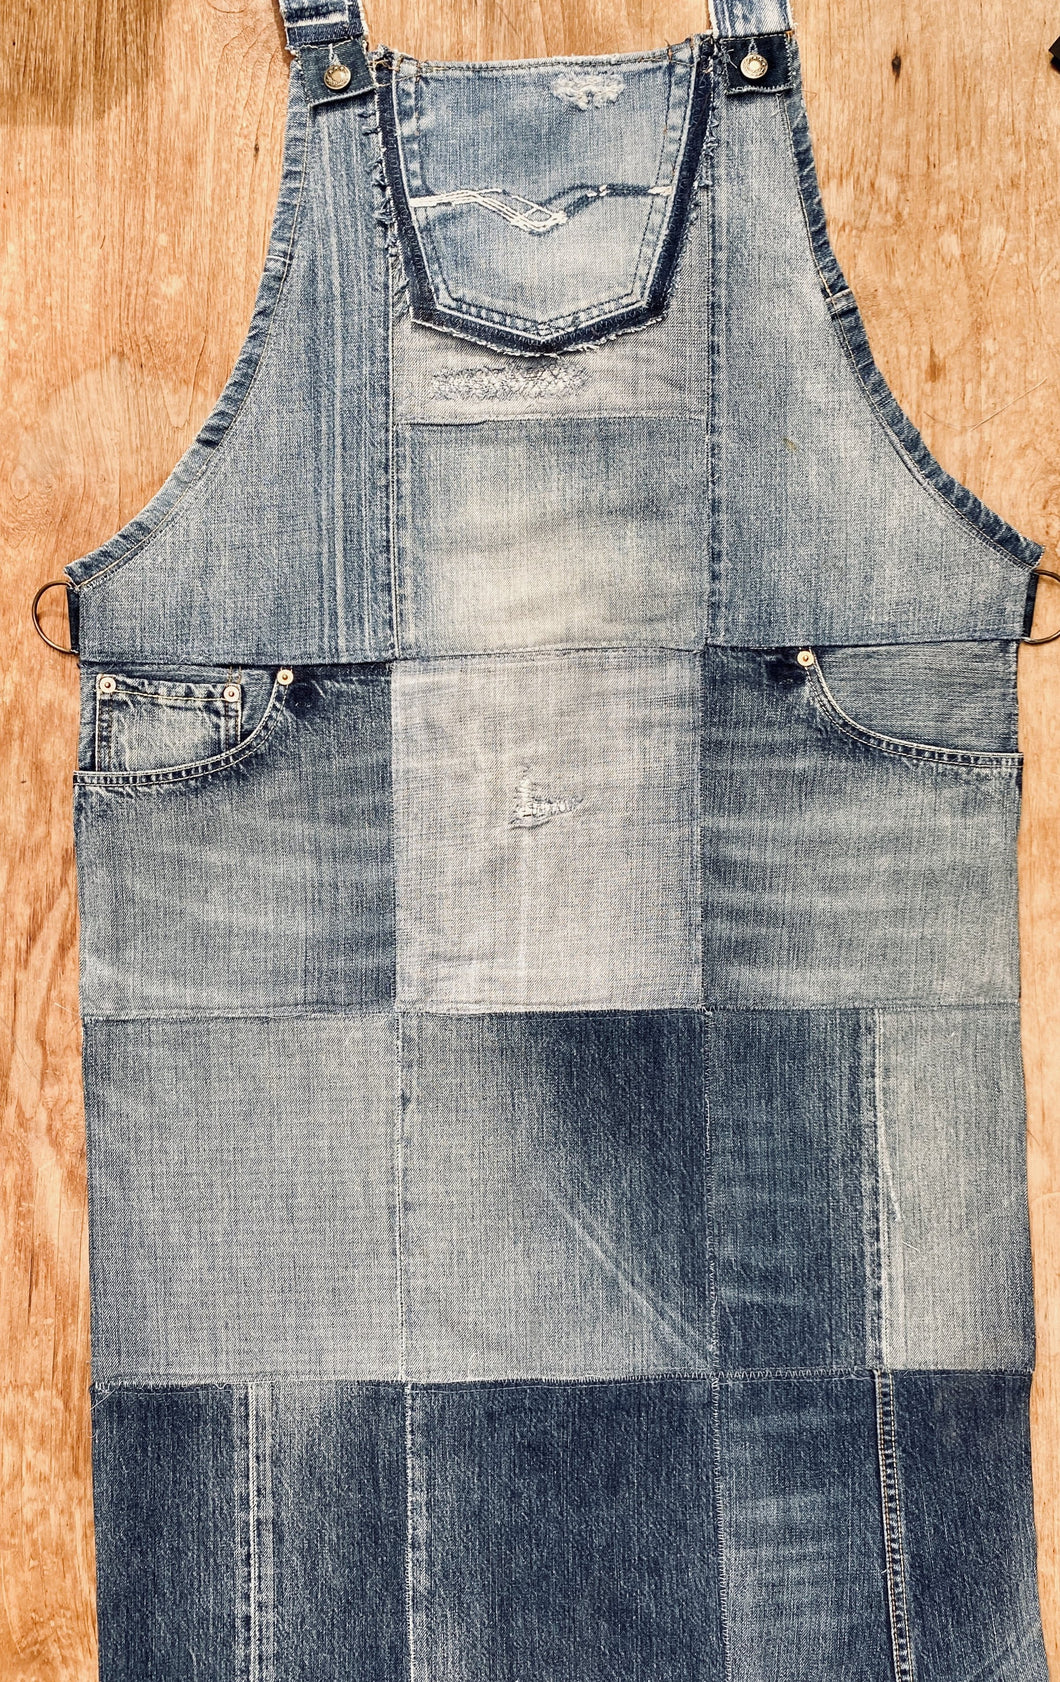 Unique Piece Denim Apron with recycled Diesel jeans